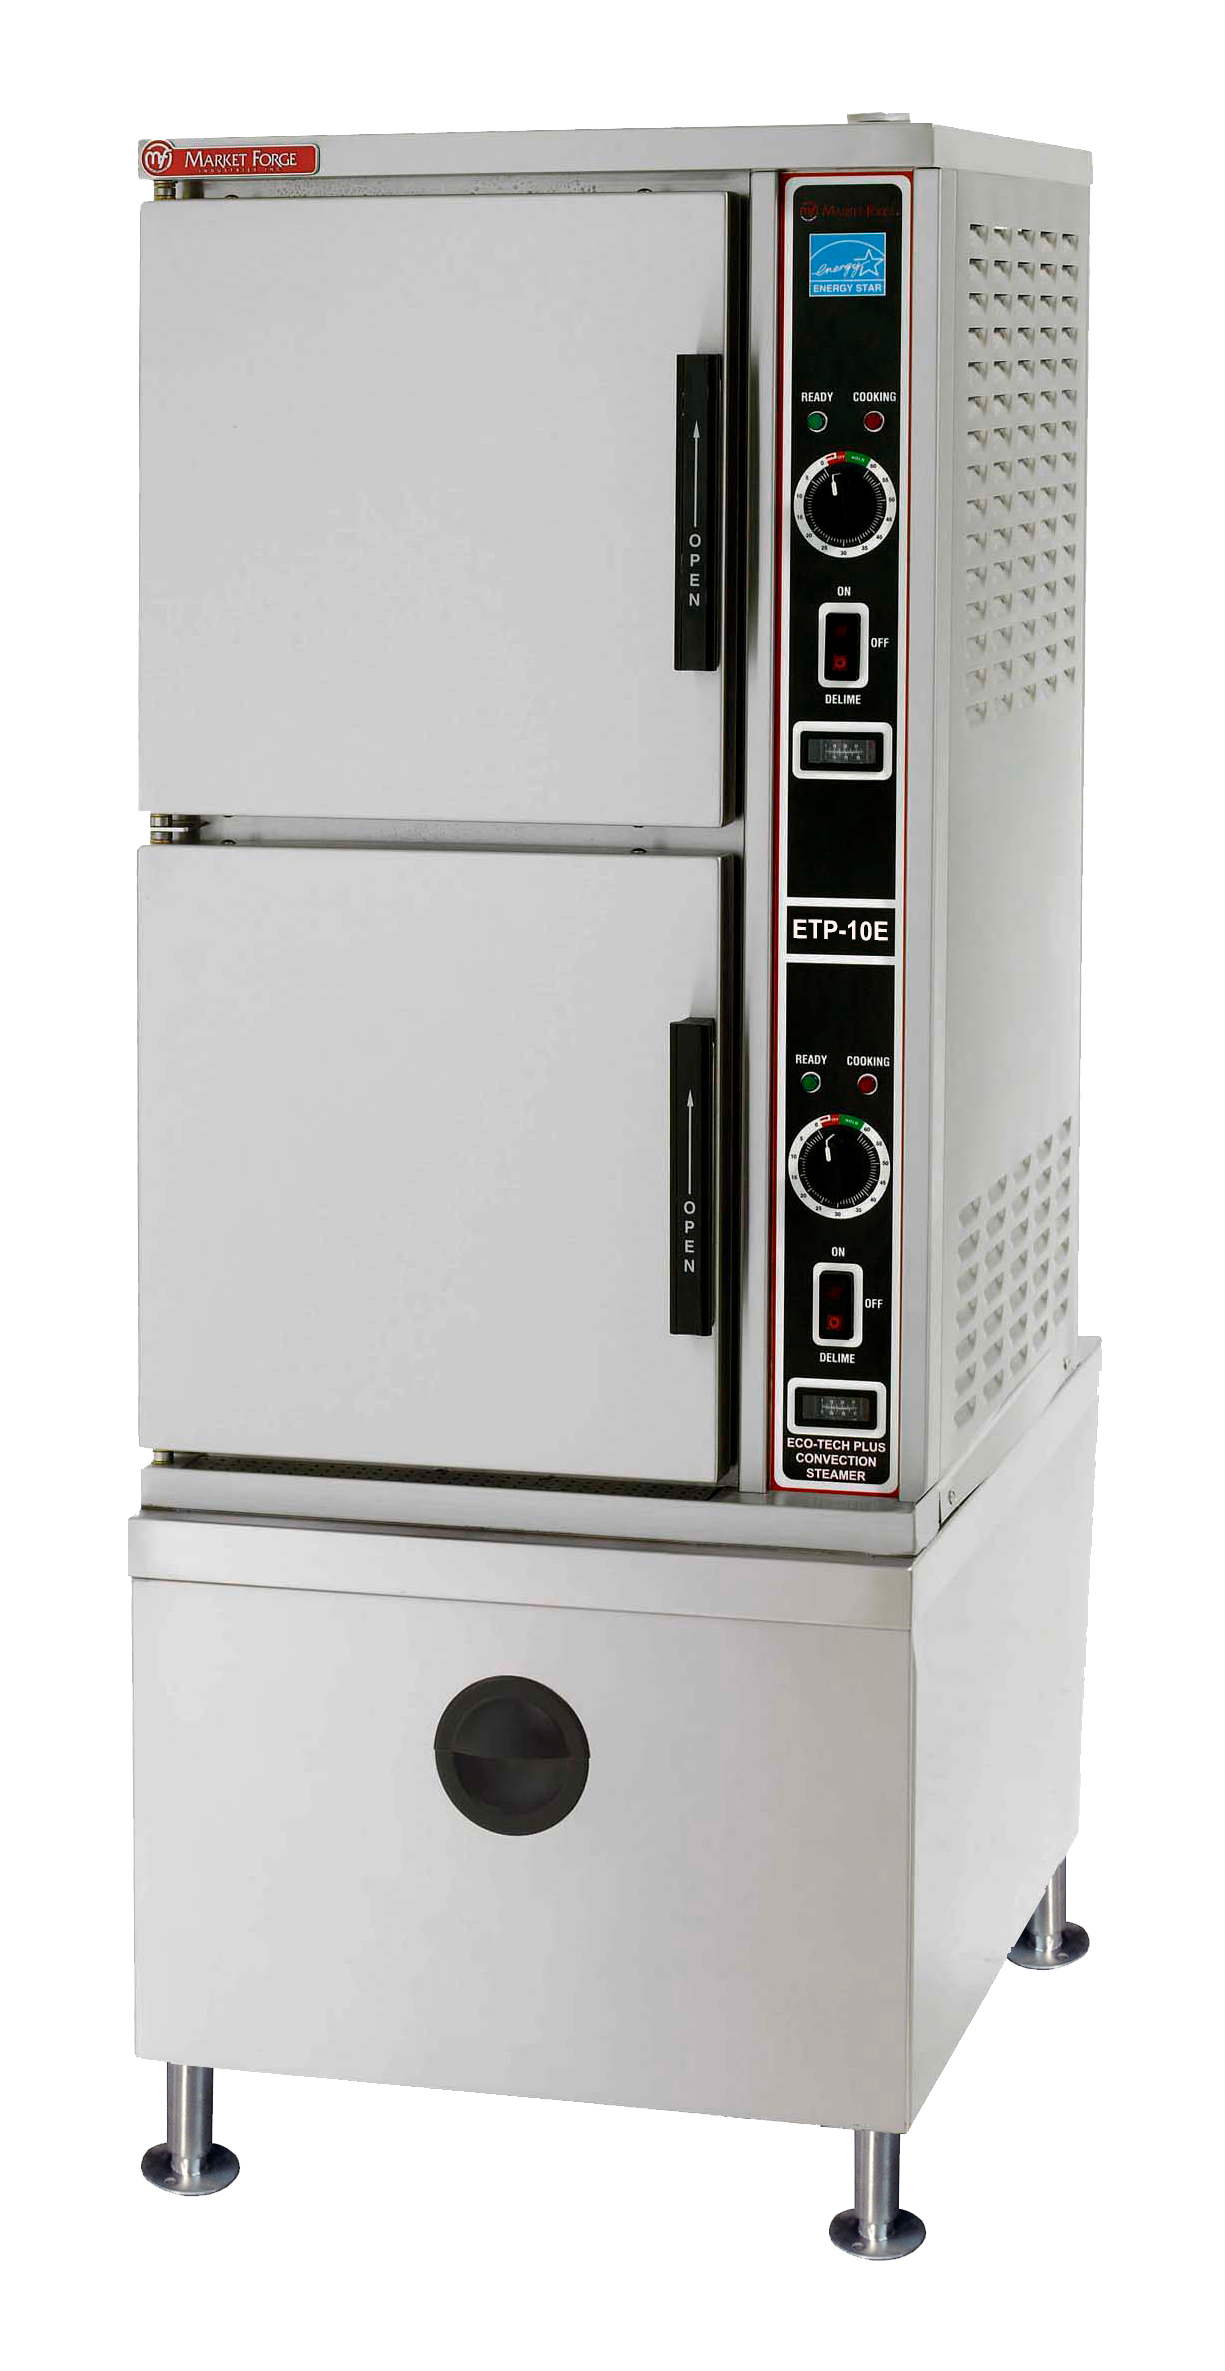 Market Forge ETP-10E steamer, convection, electric, floor model